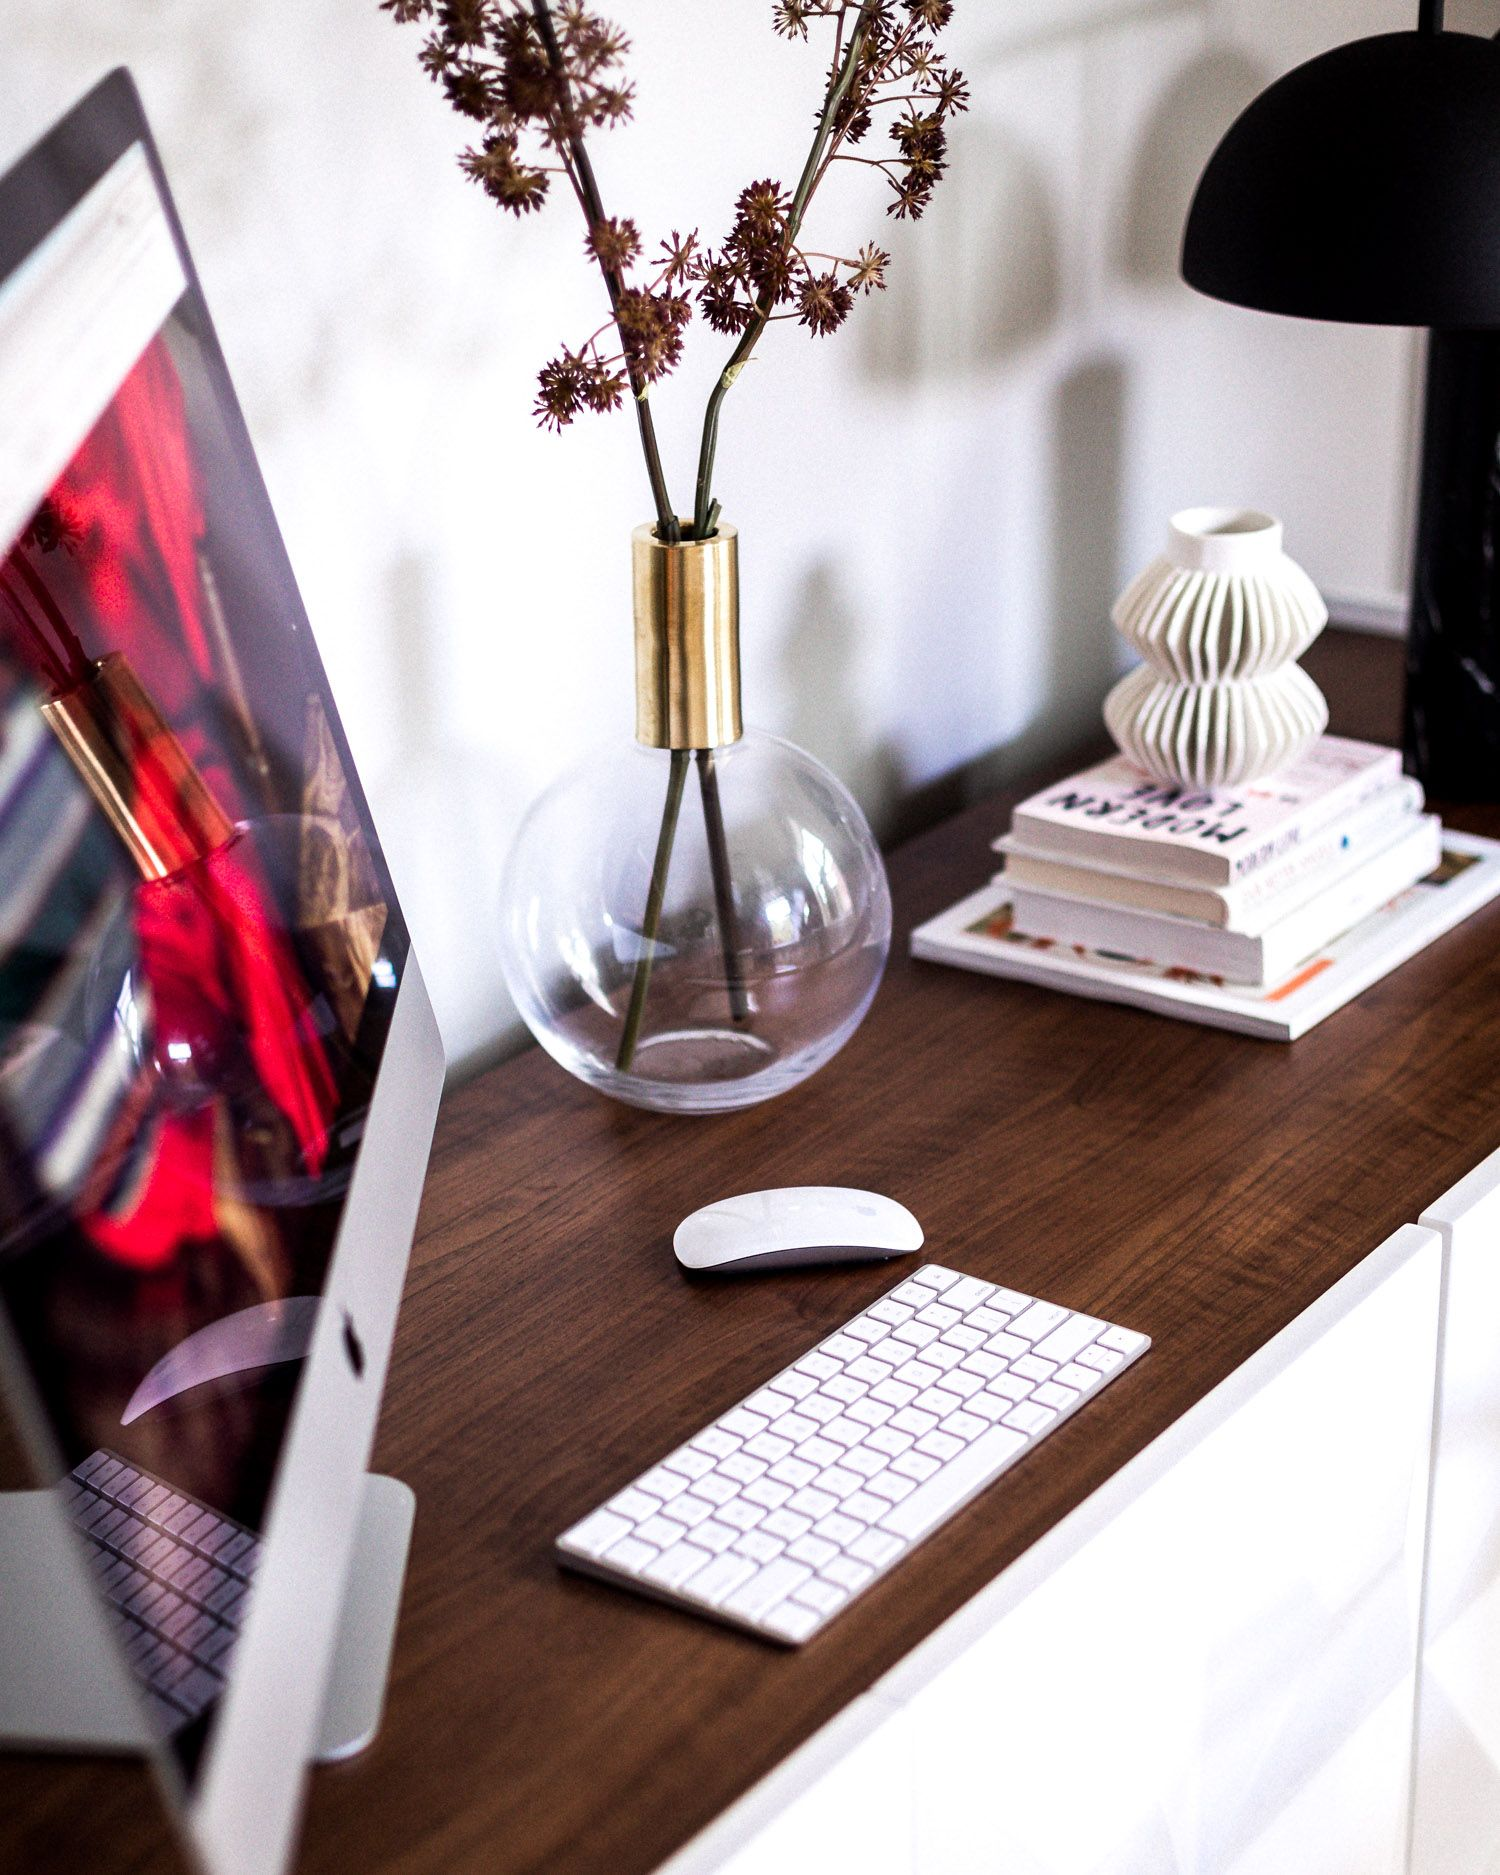 7 Tips On How To Be Productive While Working From Home. In